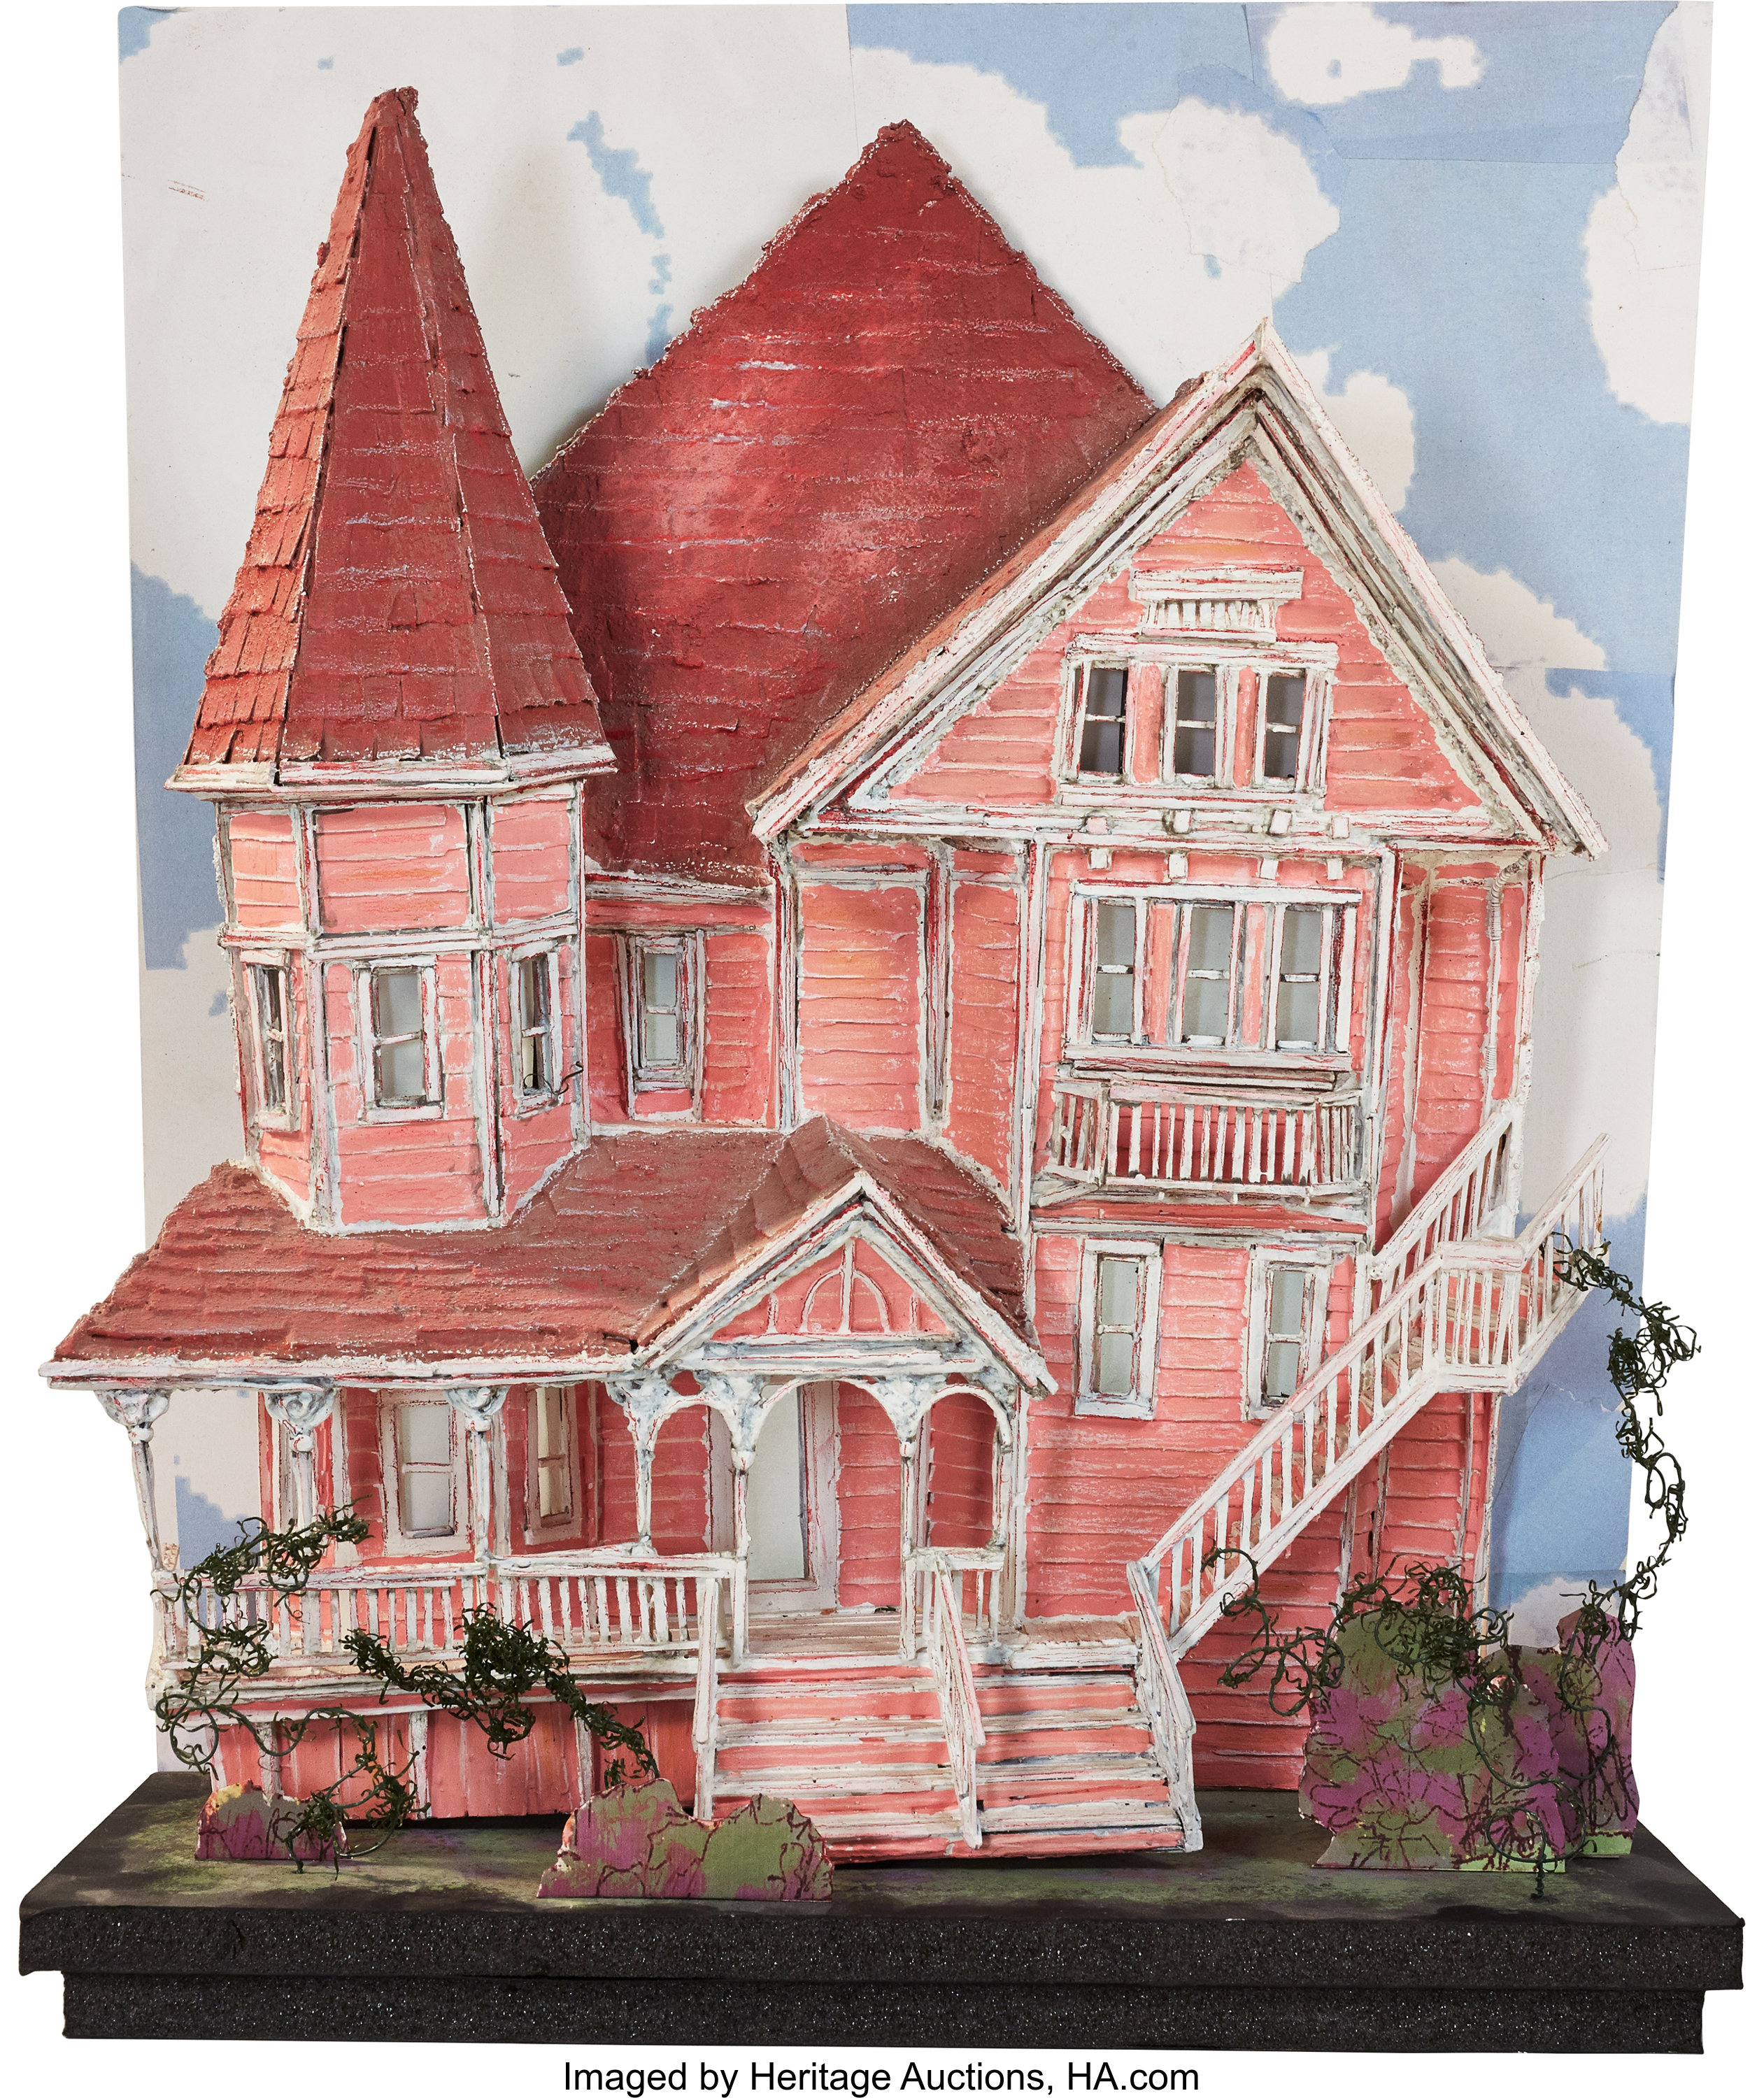 Coraline Other World Pink Palace Apartment Building Original Lot 94009 Heritage Auctions